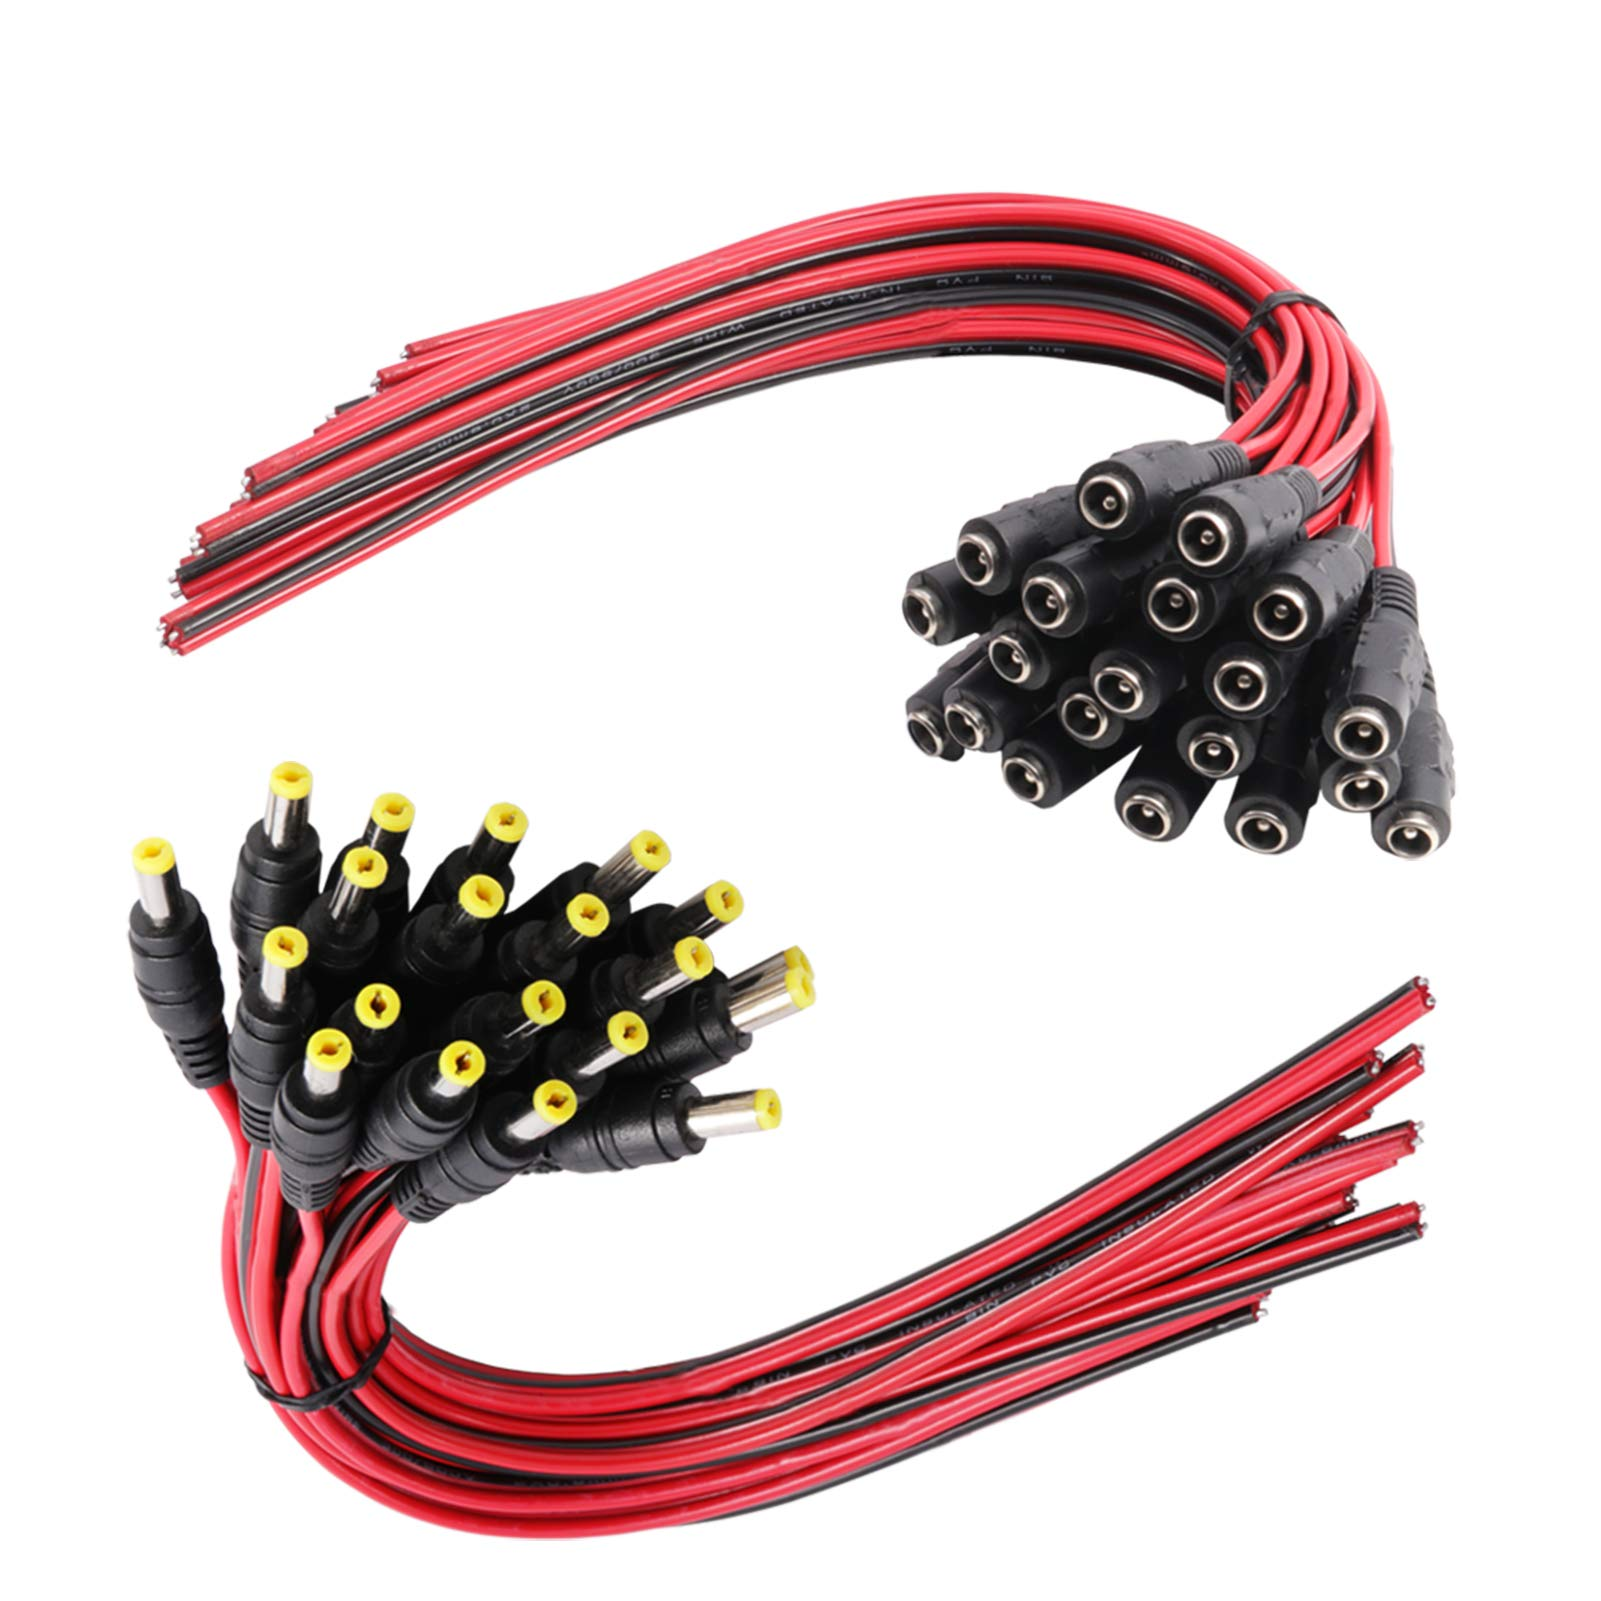 20 inch // 50 cm Car Rearview Monitor System Video LED Strip Light SIM/&NAT Male DC 2.1mm x 5.5mm Wire Power Pigtails Adapter Barrel Plug Socket Cables for CCTV Security Camera DVR Surveillance